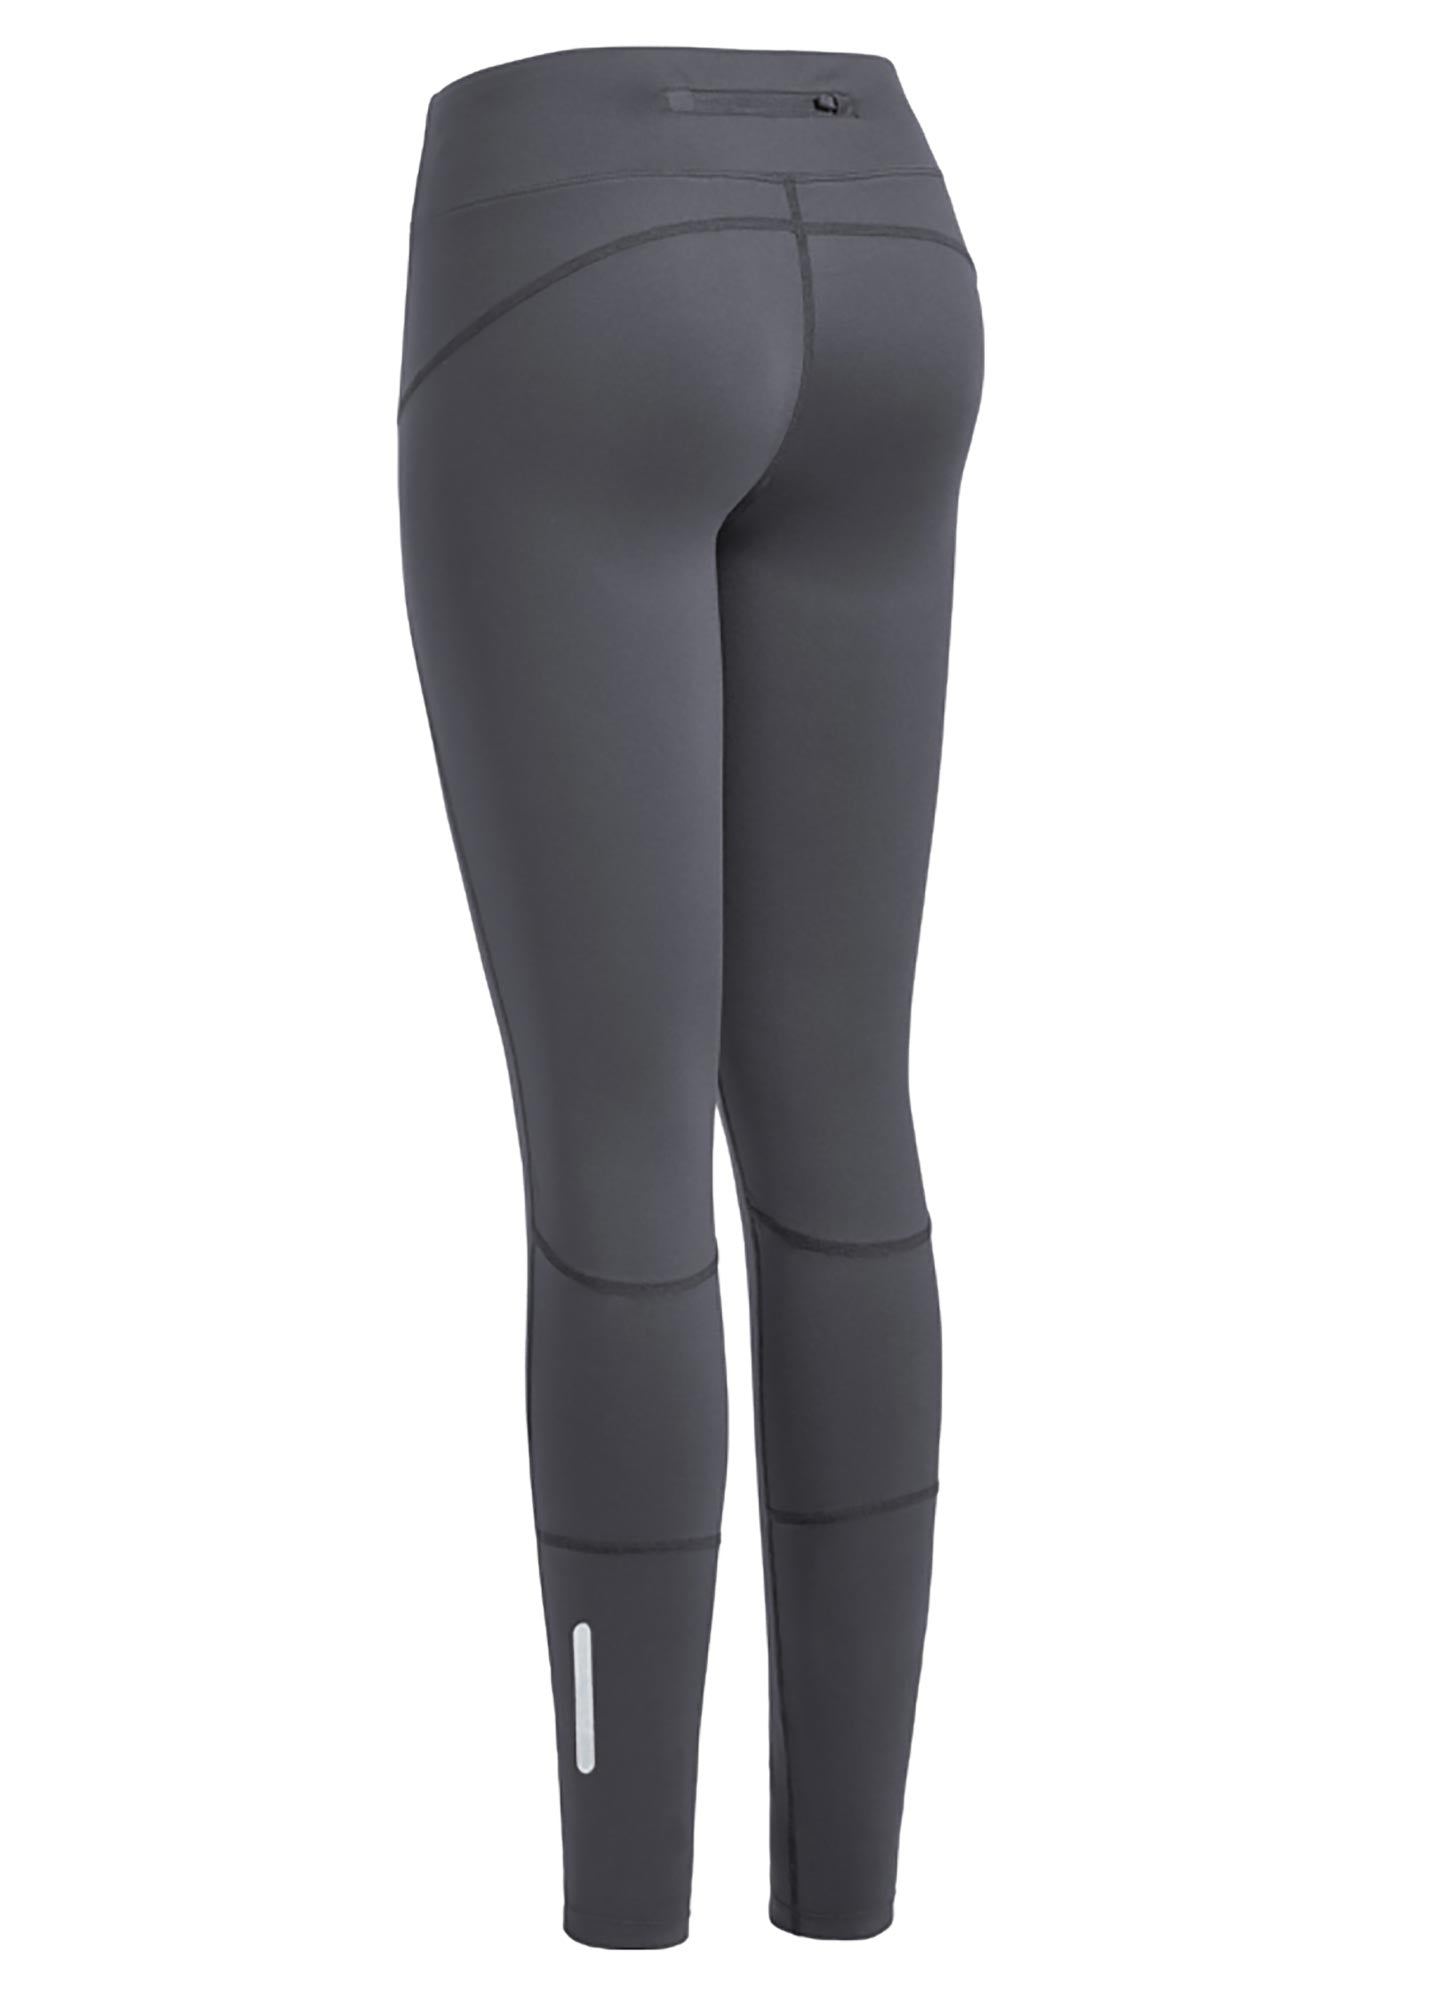 long leggings black christian sports apparel be free